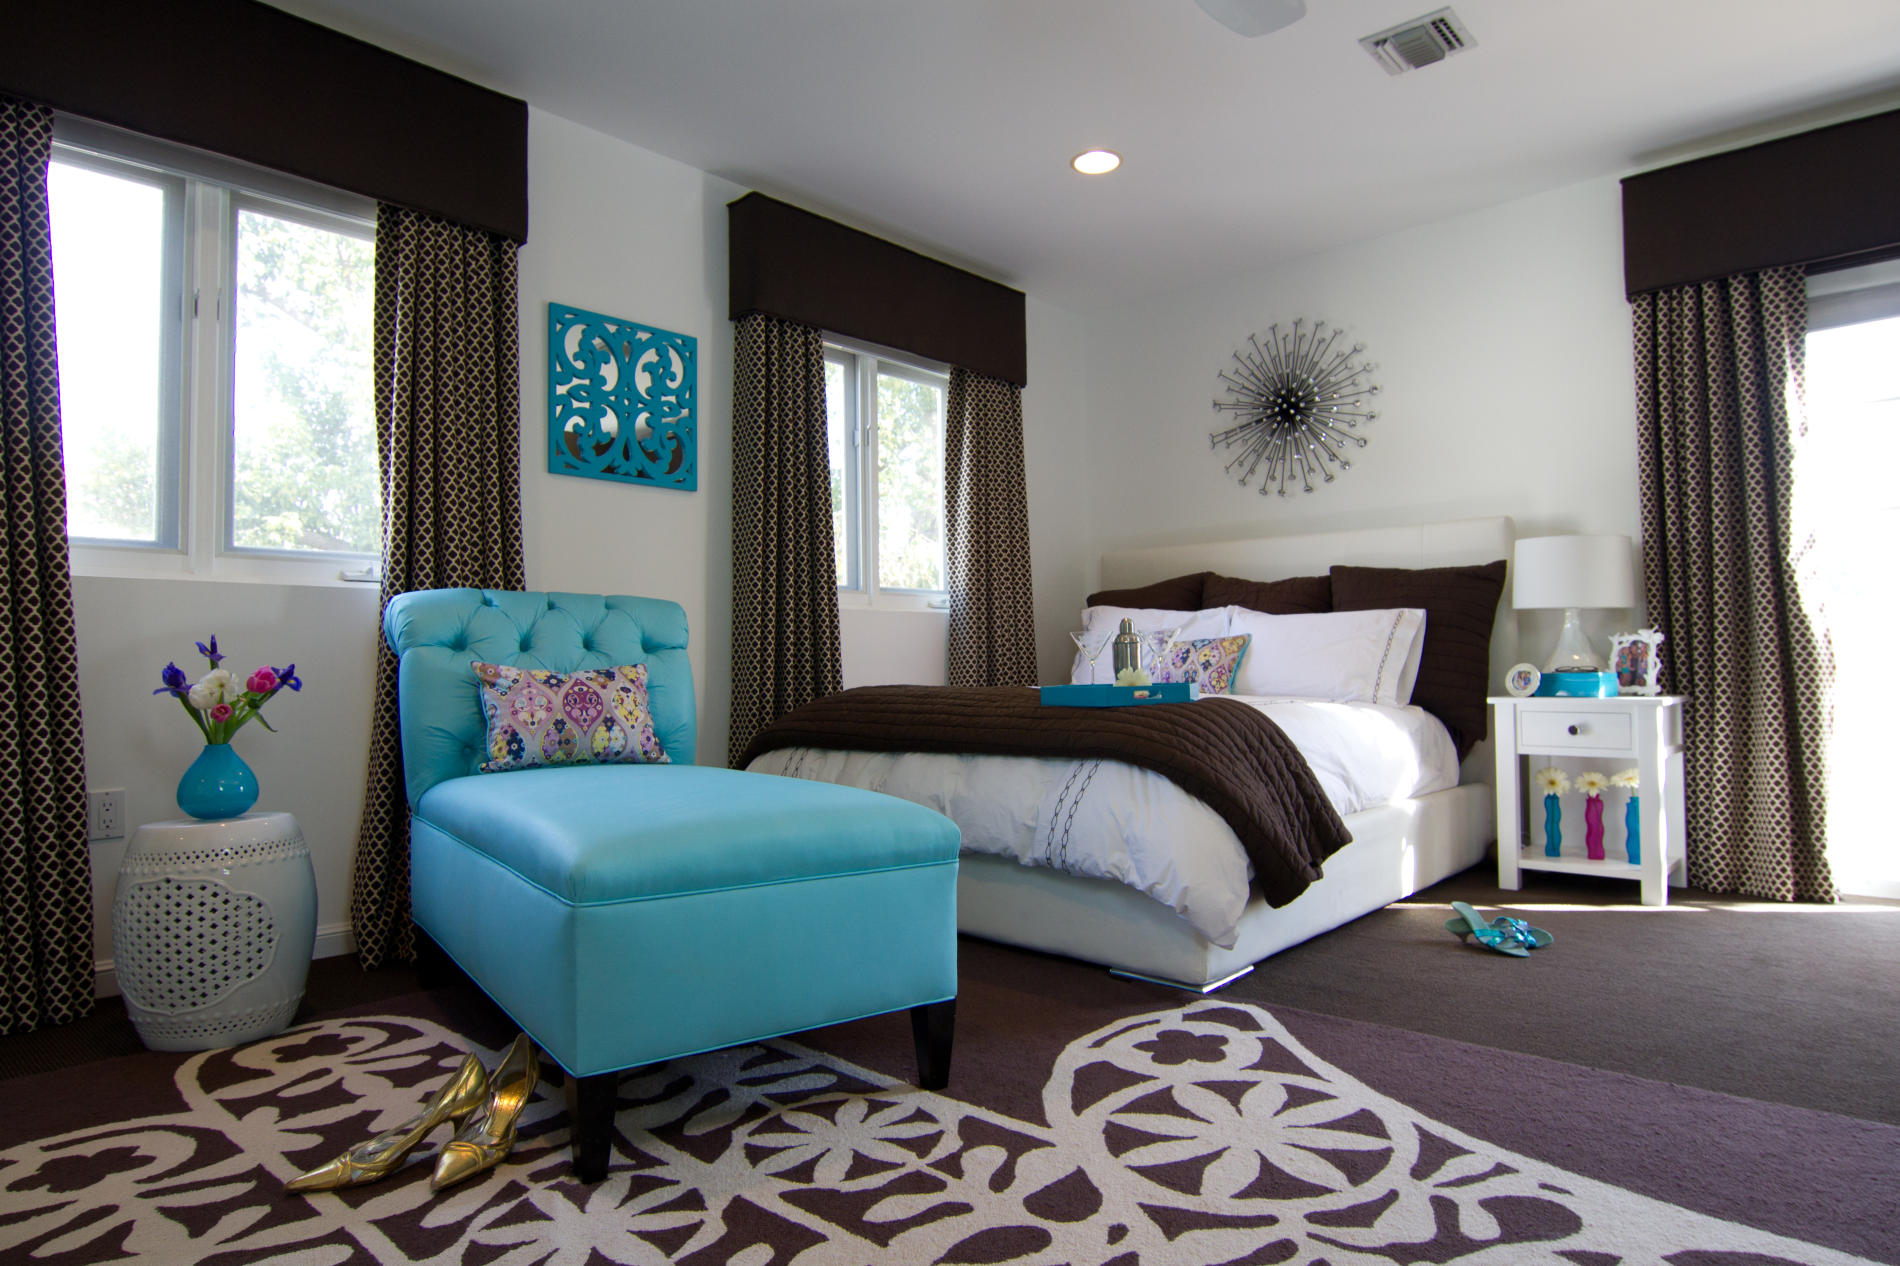 Brown And Teal Bedroom Make Your Bedroom A Romantic Haven Part 4 My Decorative